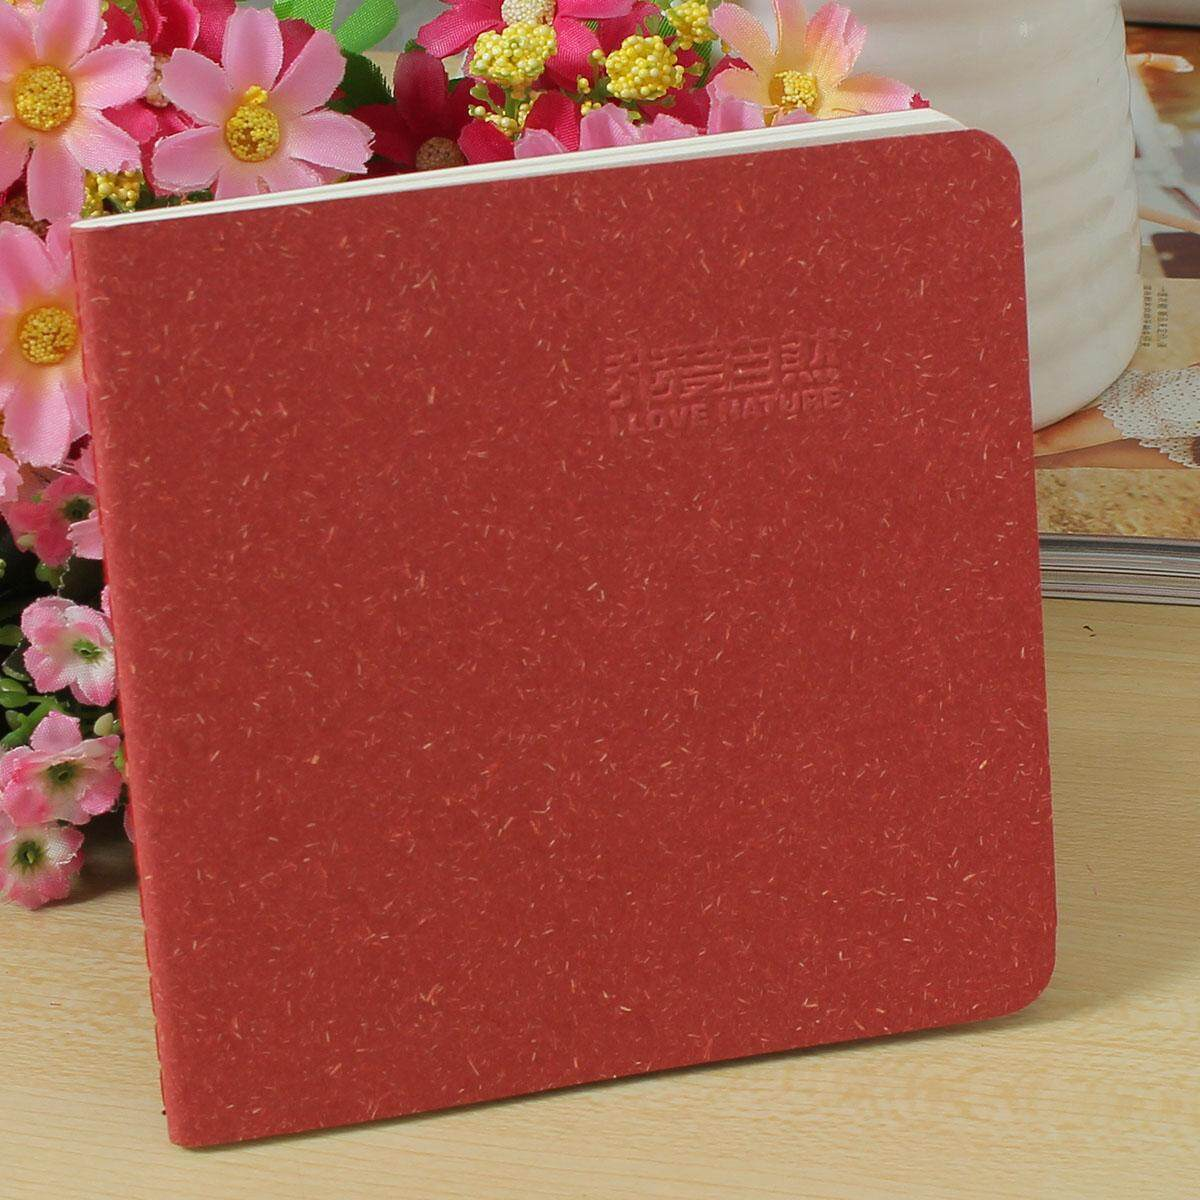 1pcs Vintage Retro Style Solid Color Notebook Paper Notepad Pockets Notepad Diary Sketchbook Stationery Office School Supplies By Autoleader.